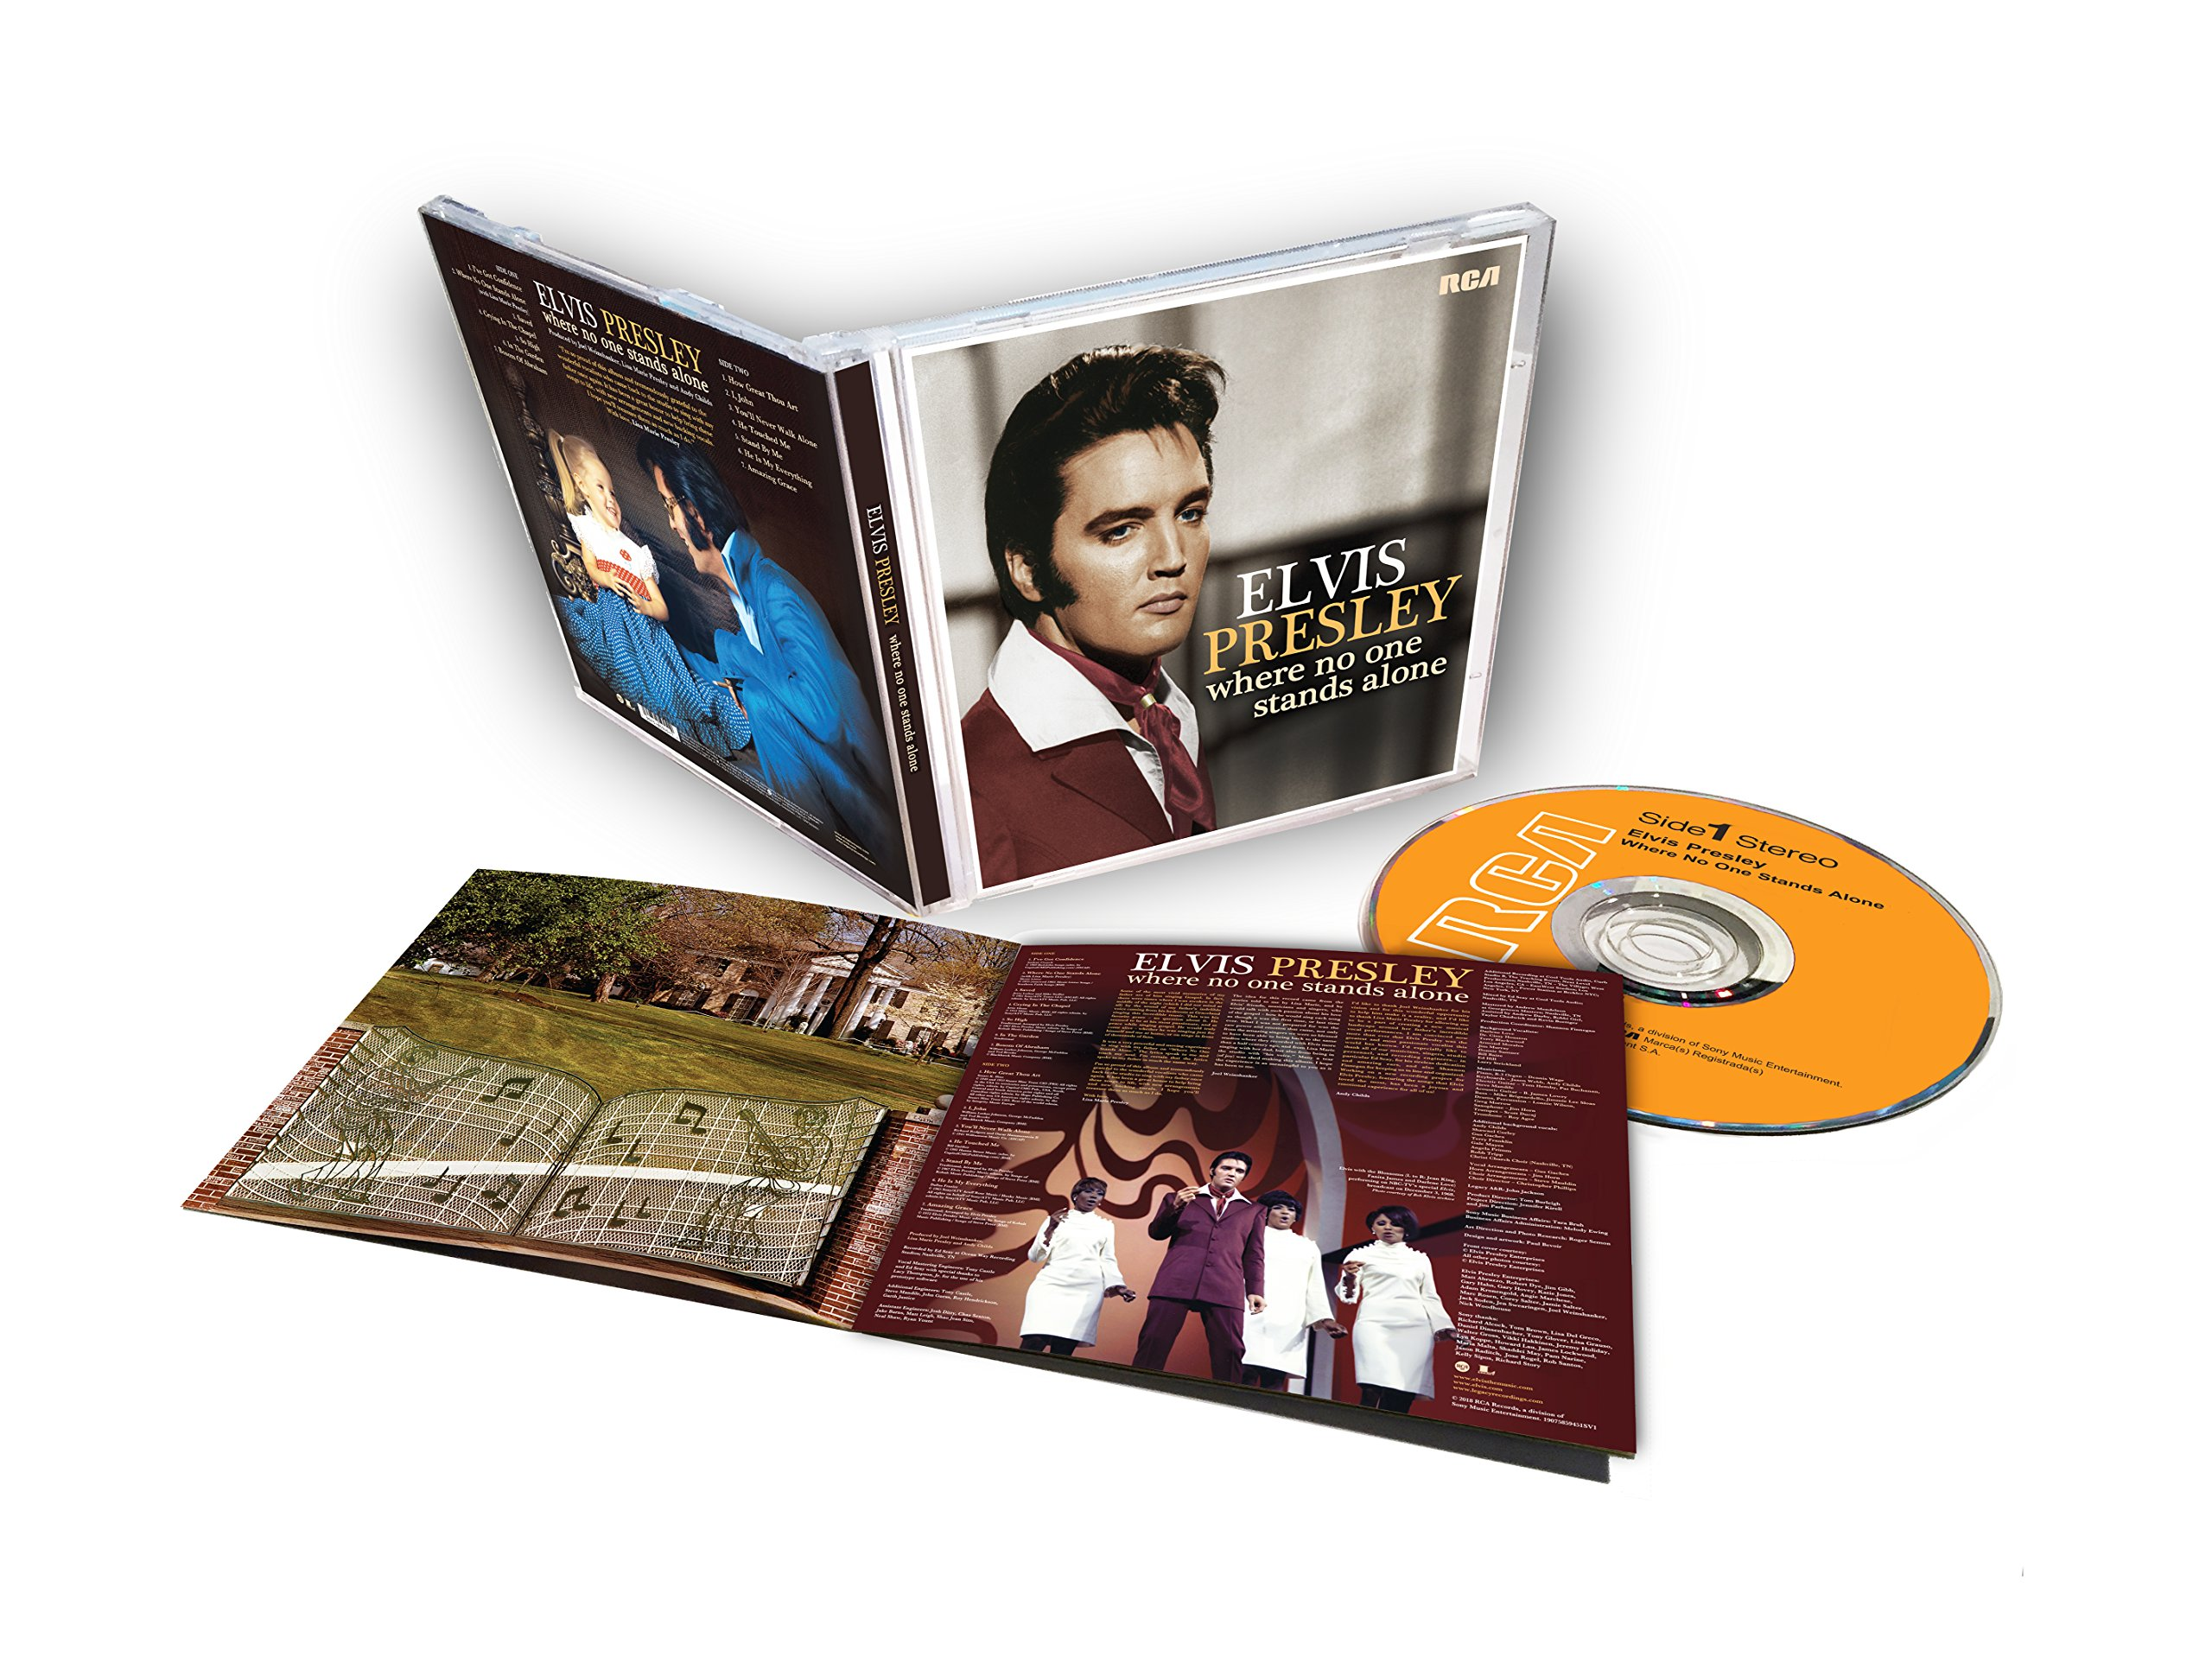 Image result for Elvis gospel compilation, 'Where No One Stands Alone